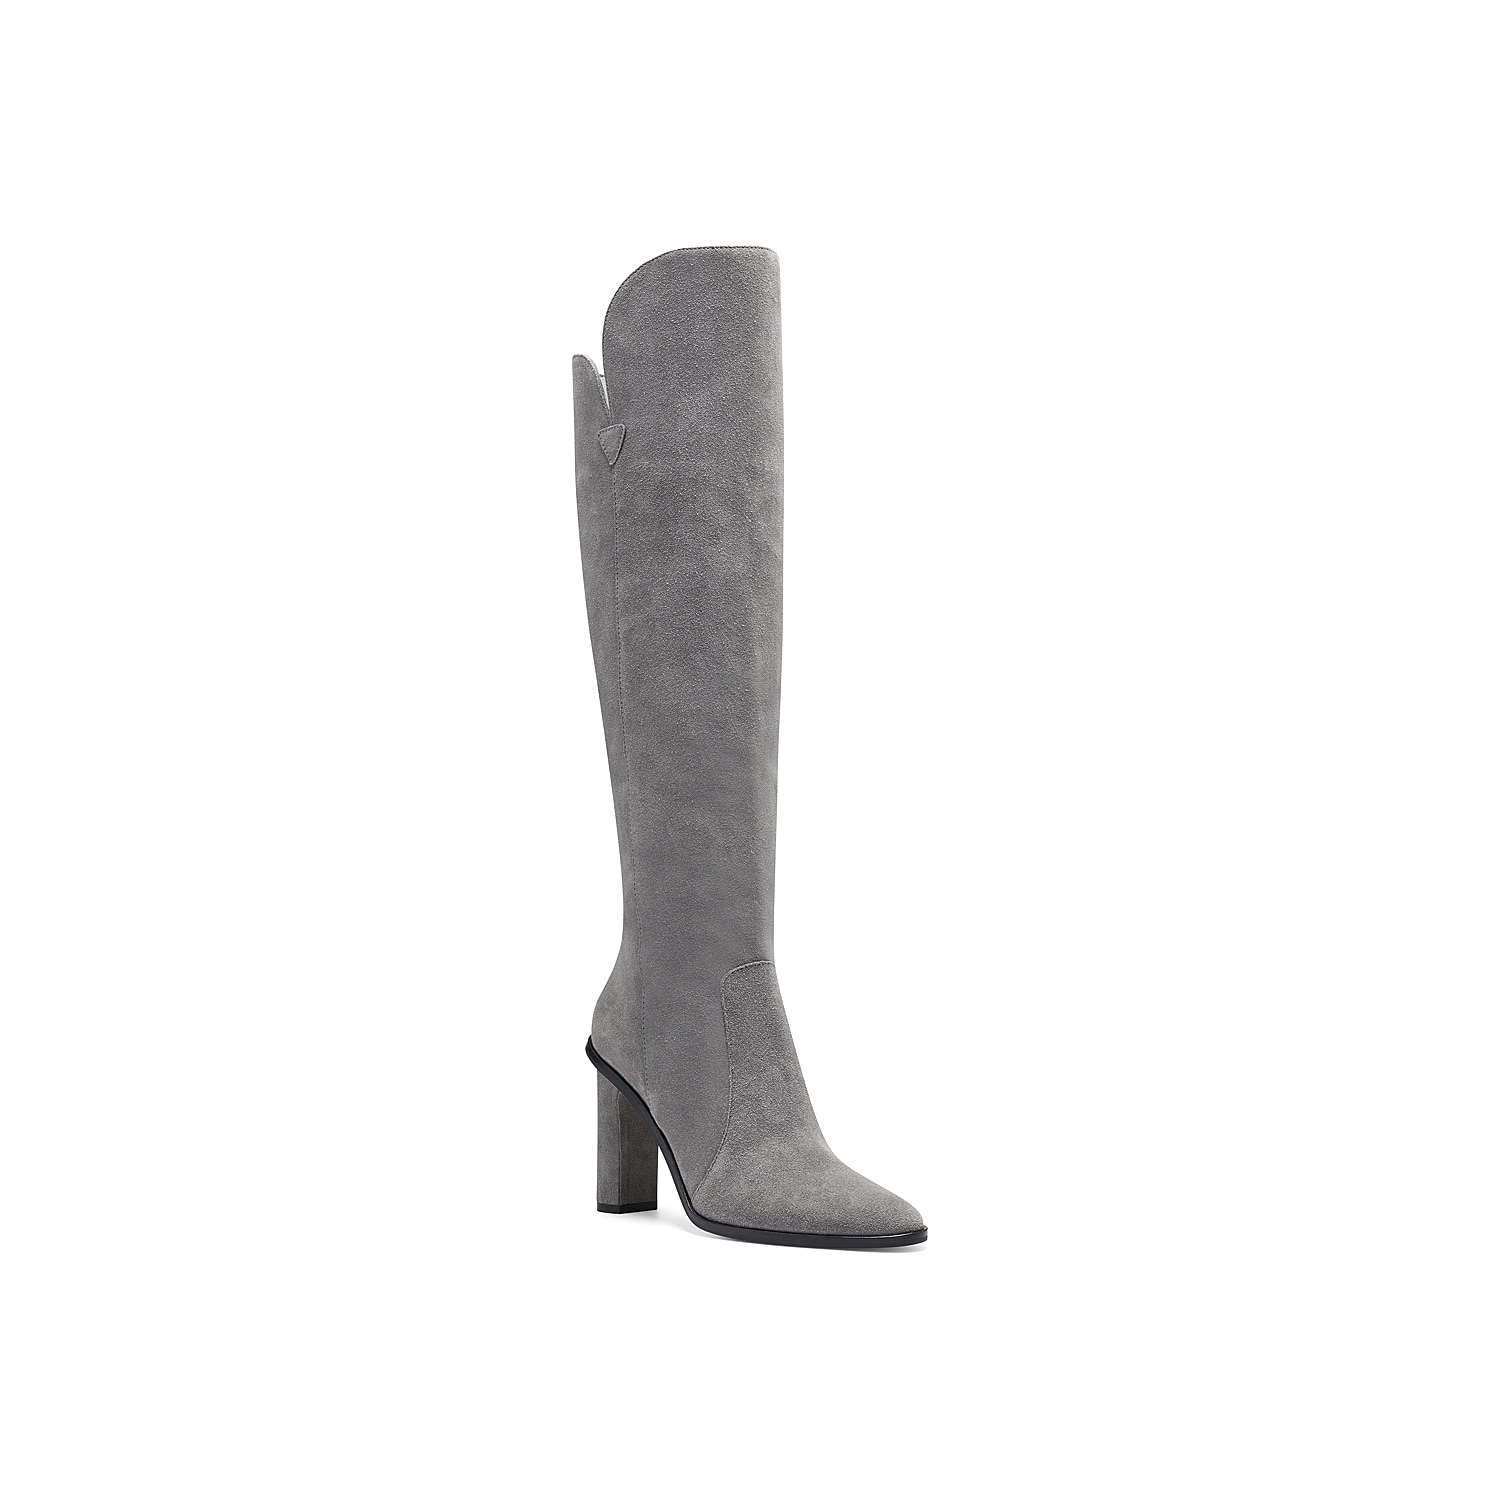 The Palley over the knee boot by Vince Camuto is an absolute showstopper with elevated style. Boasting rich croc embossing, this tall boot has a hi-lo top line and ankle zip closure along with a wrapped block heel.Click here for Boot Measuring Guide.